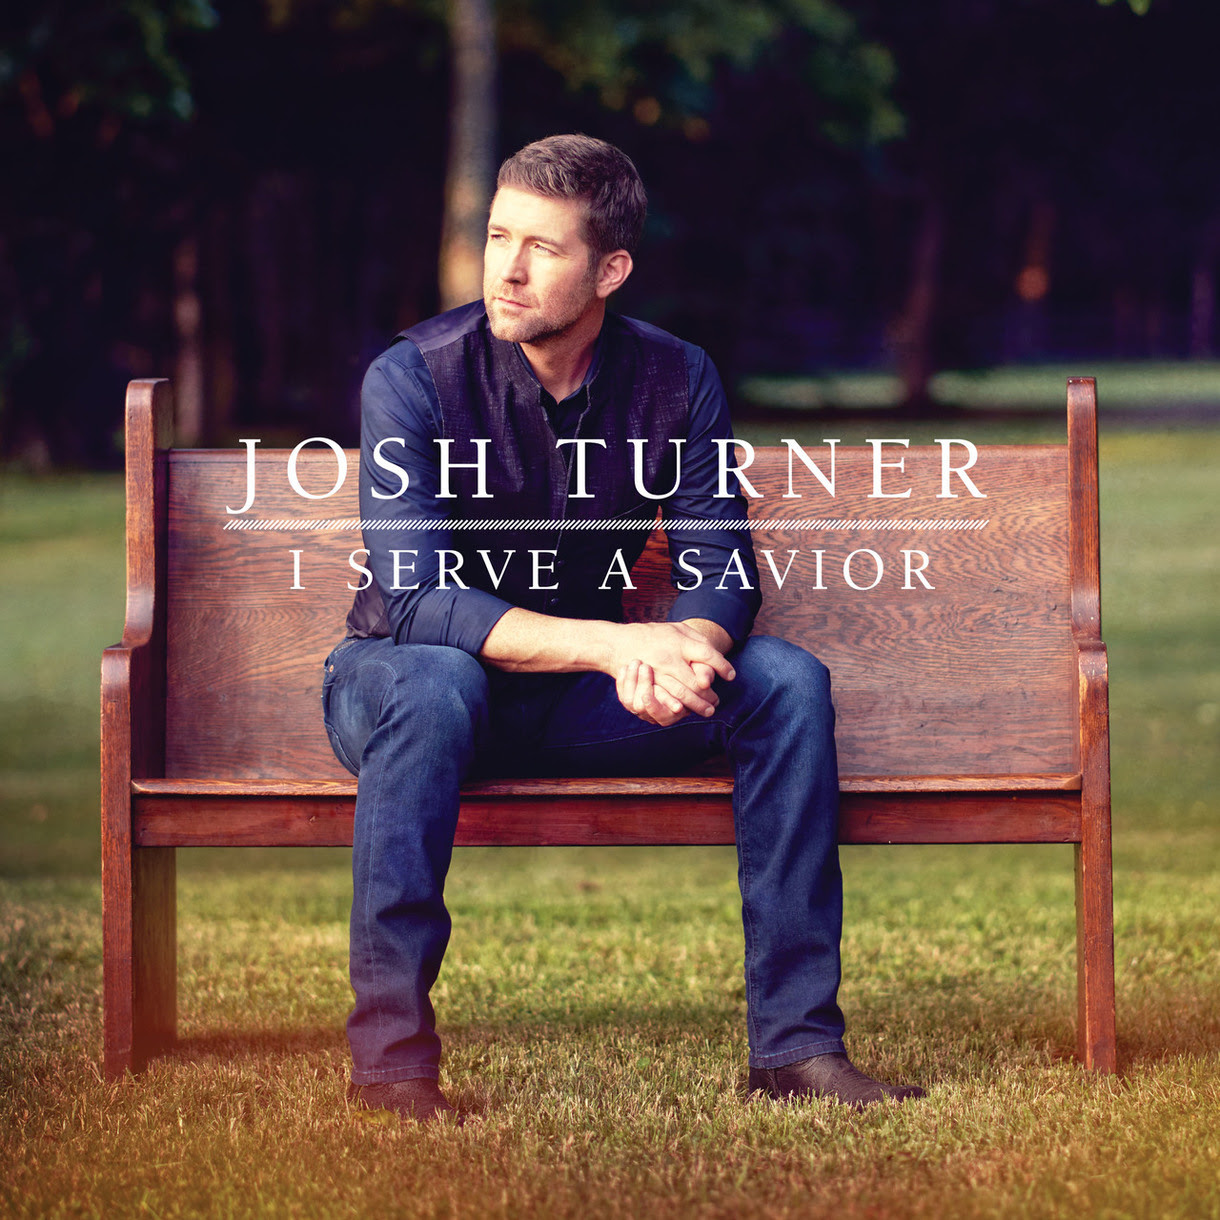 Josh Turner's Anticipated Album I Serve A Savior is Available Now